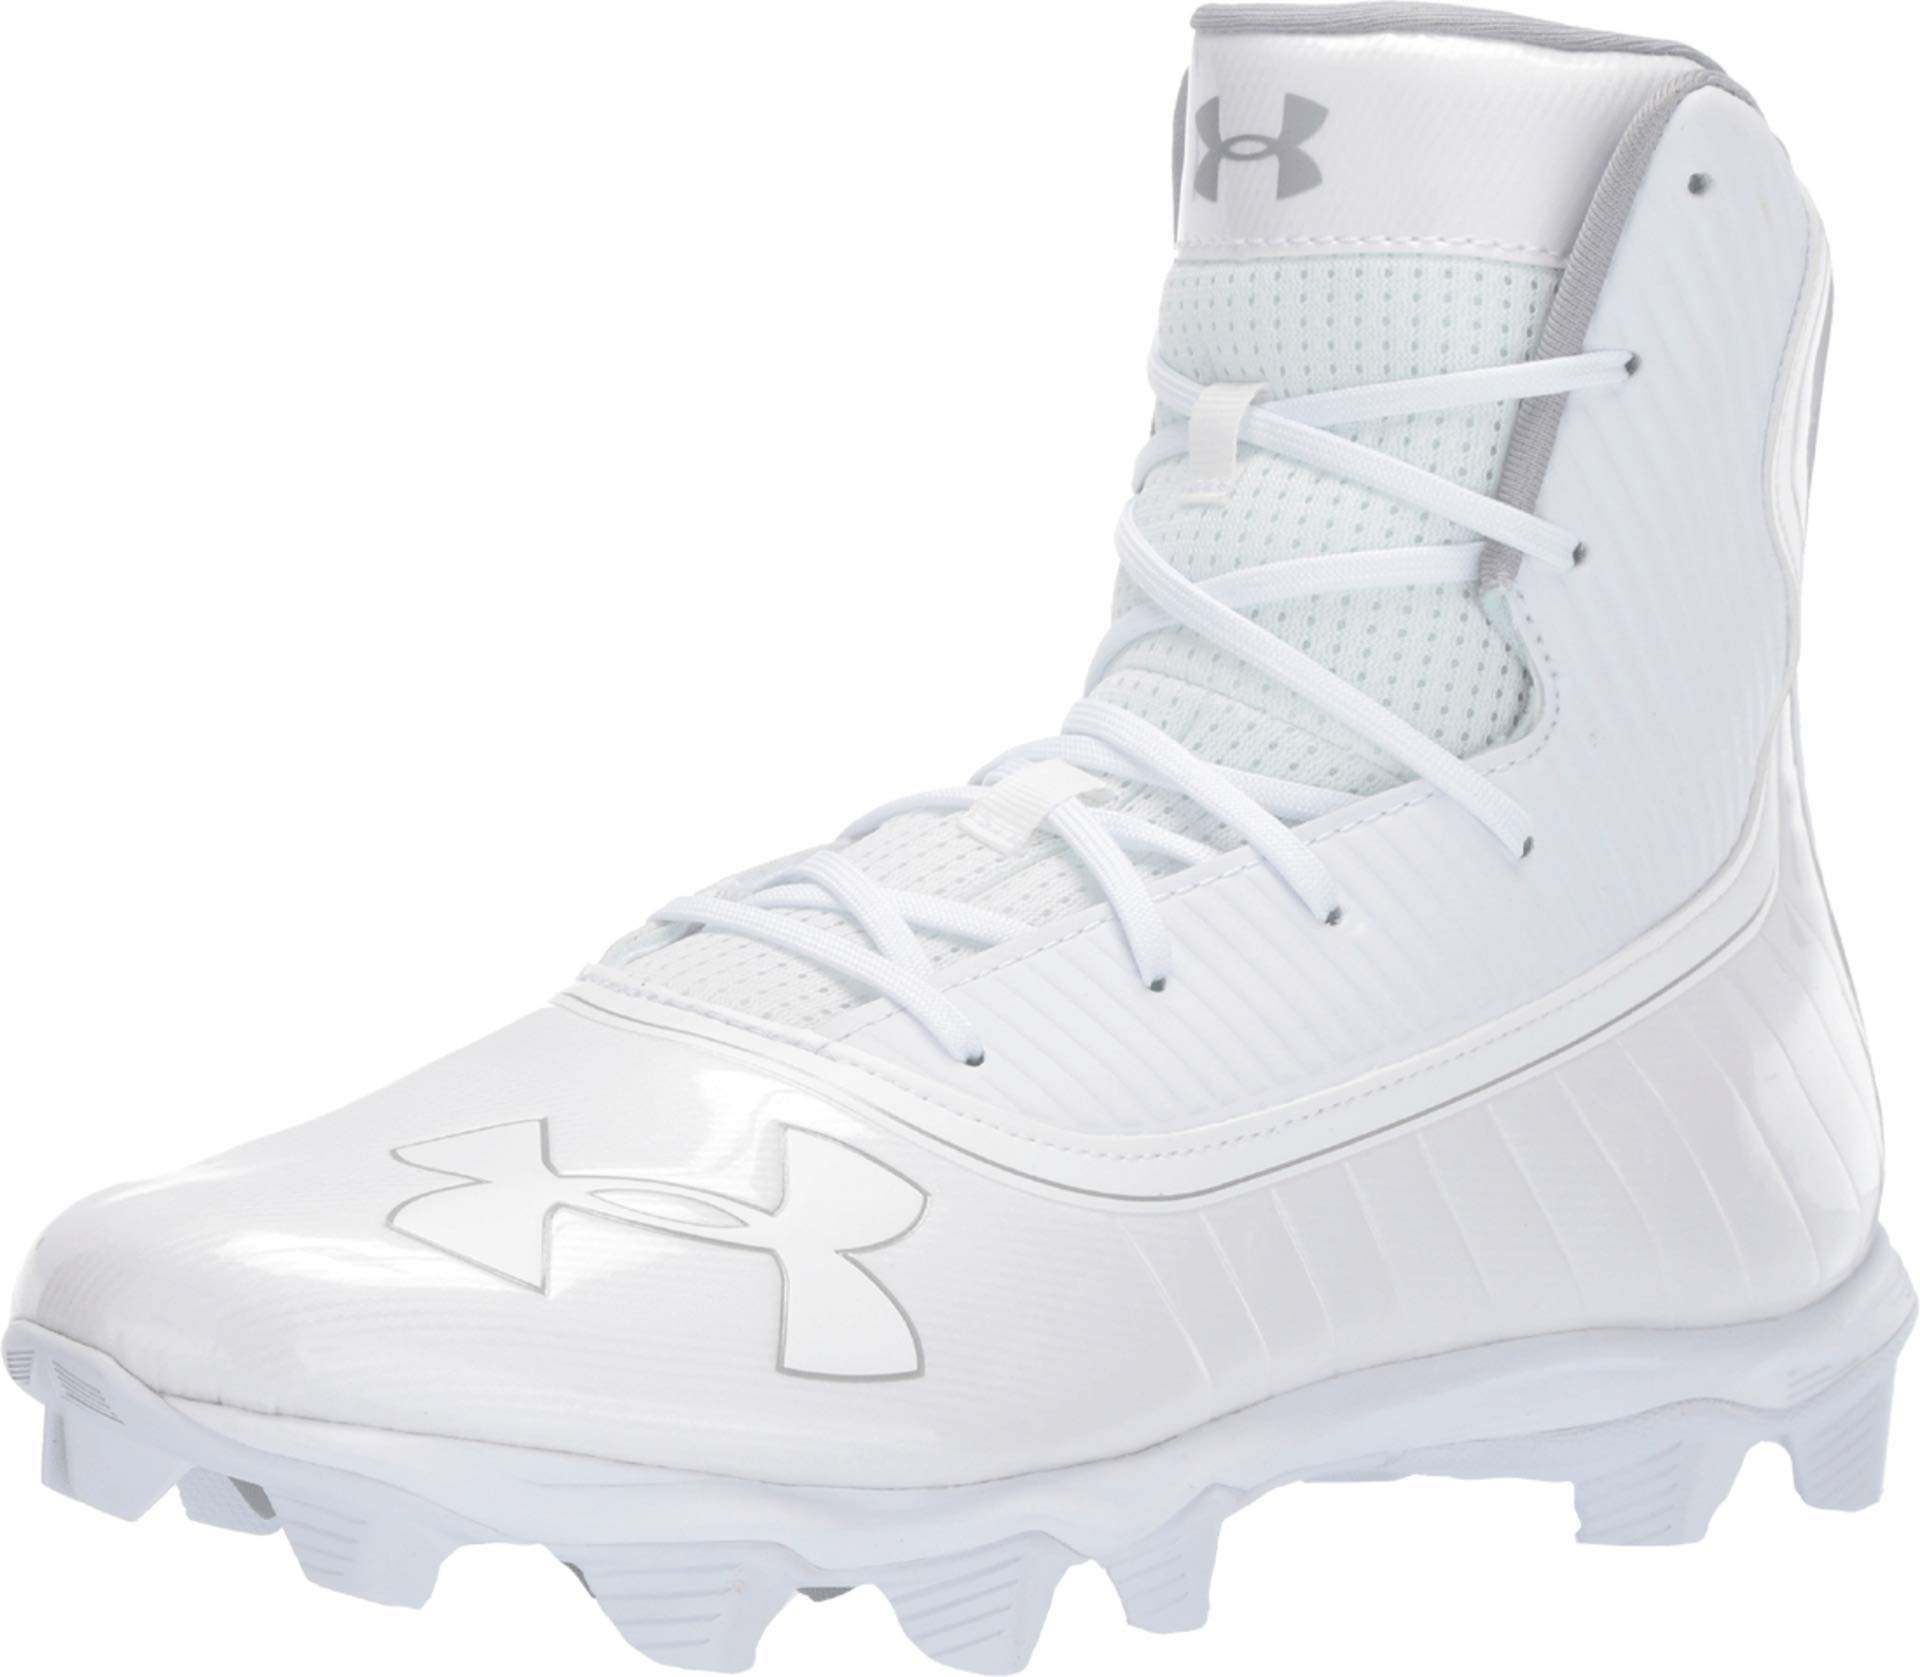 Under Armour Men's UA Highlight RM White/Metallic Silver 6.5 D US